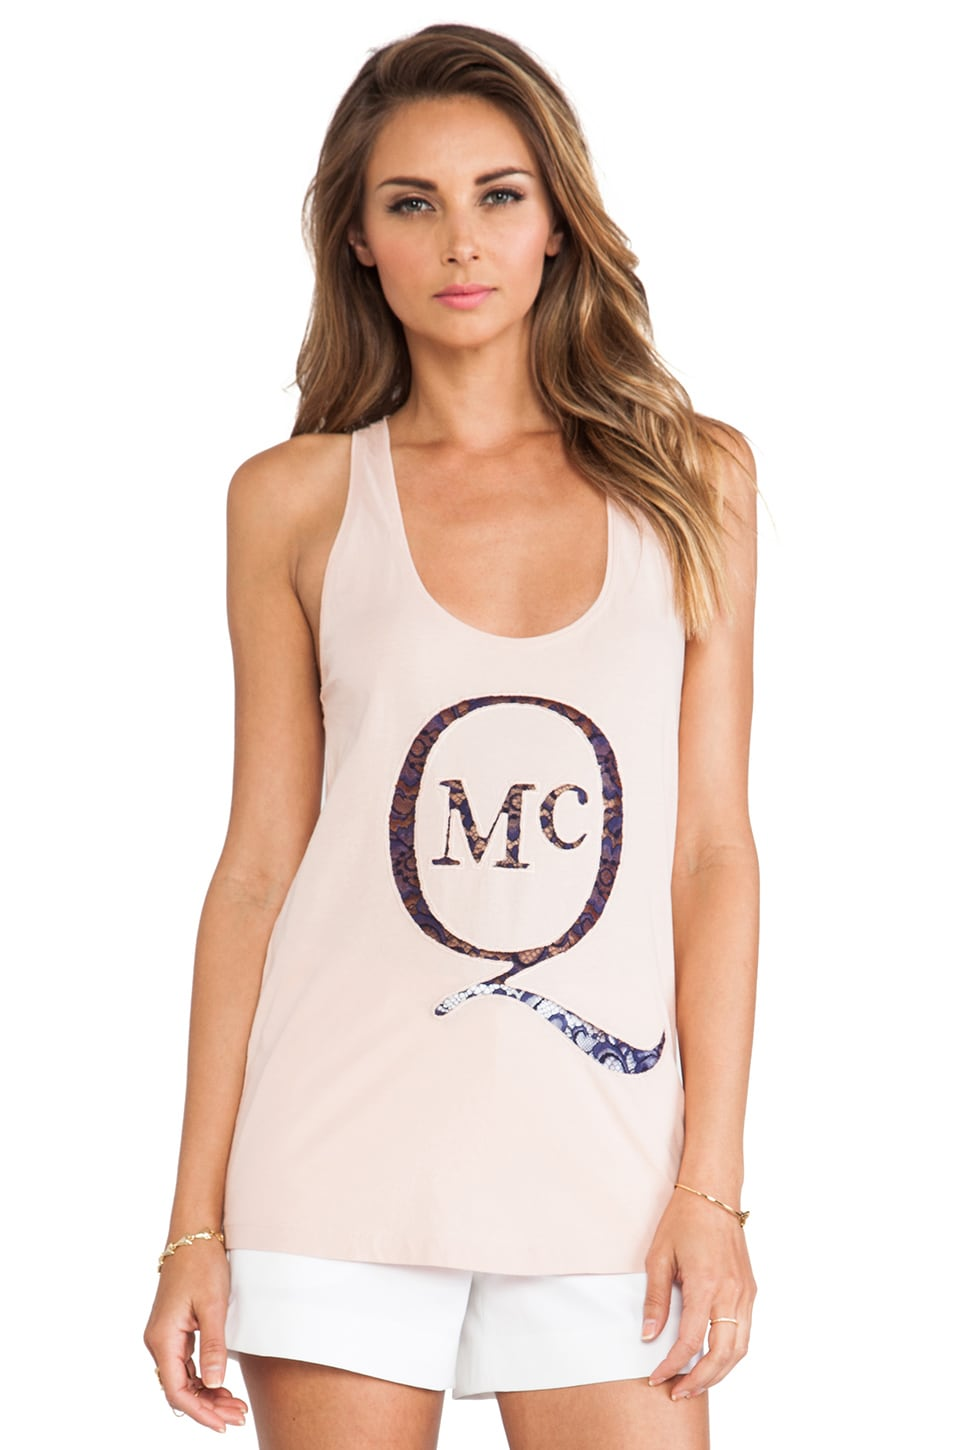 McQ Alexander McQueen Racer Back Tank in Tea Rose